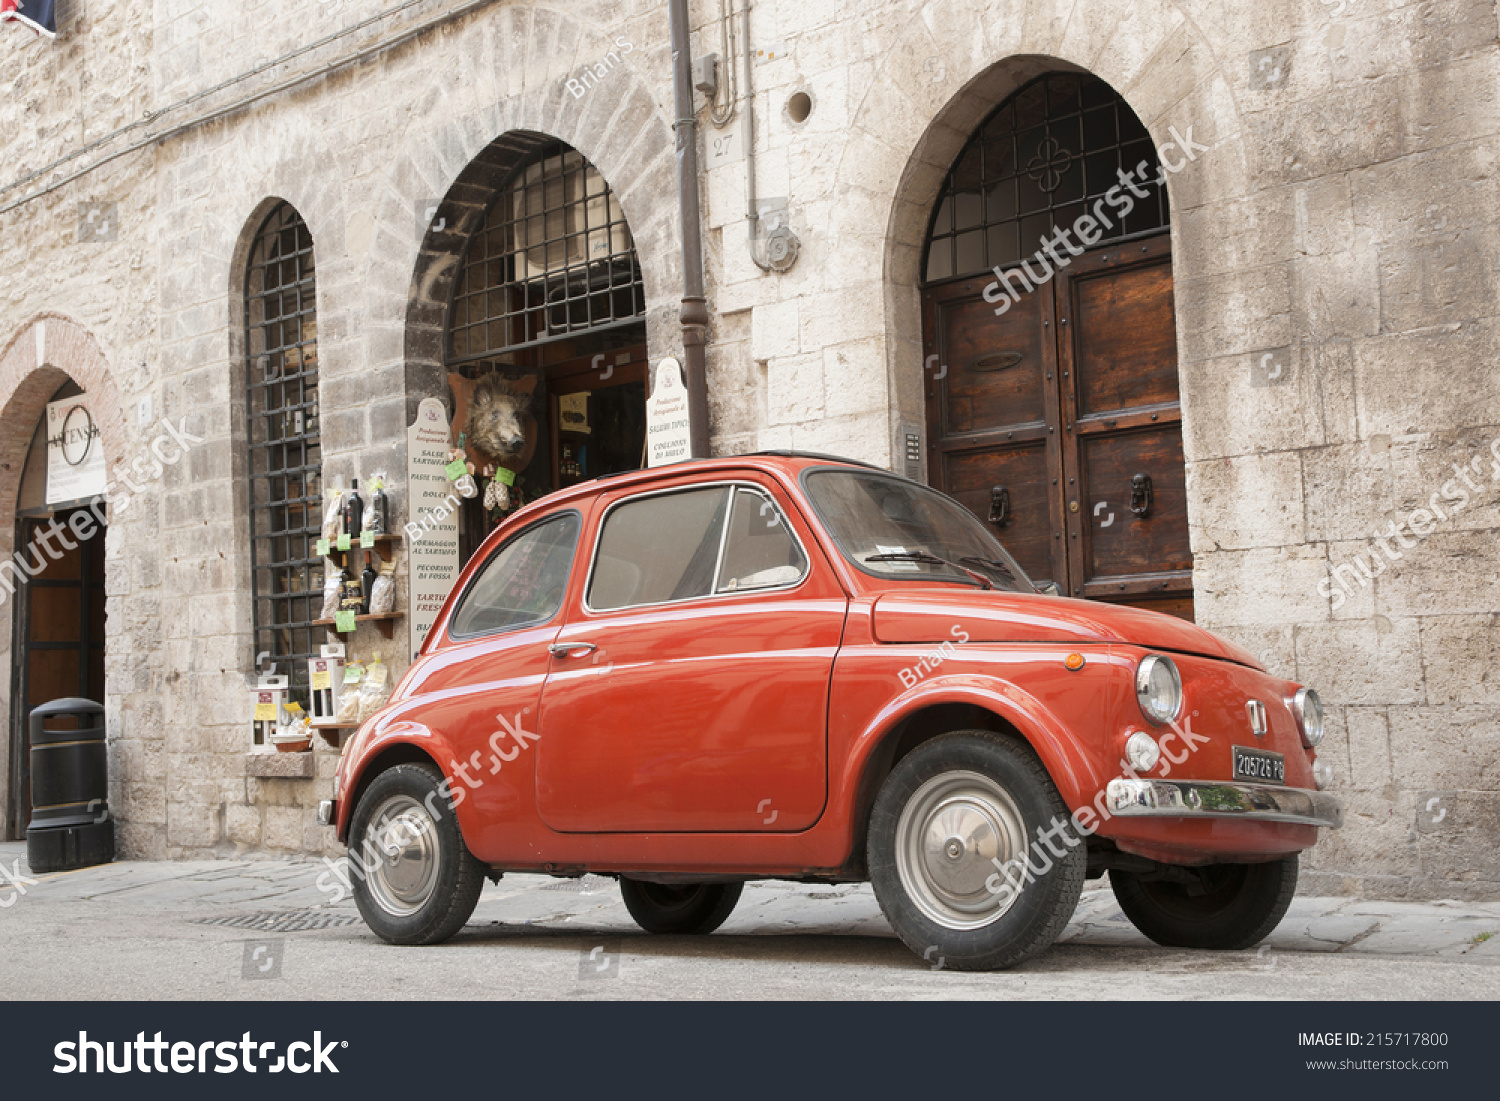 gubbio italy may 13 iconic orange fiat 500 parked in historic street on traditional. Black Bedroom Furniture Sets. Home Design Ideas